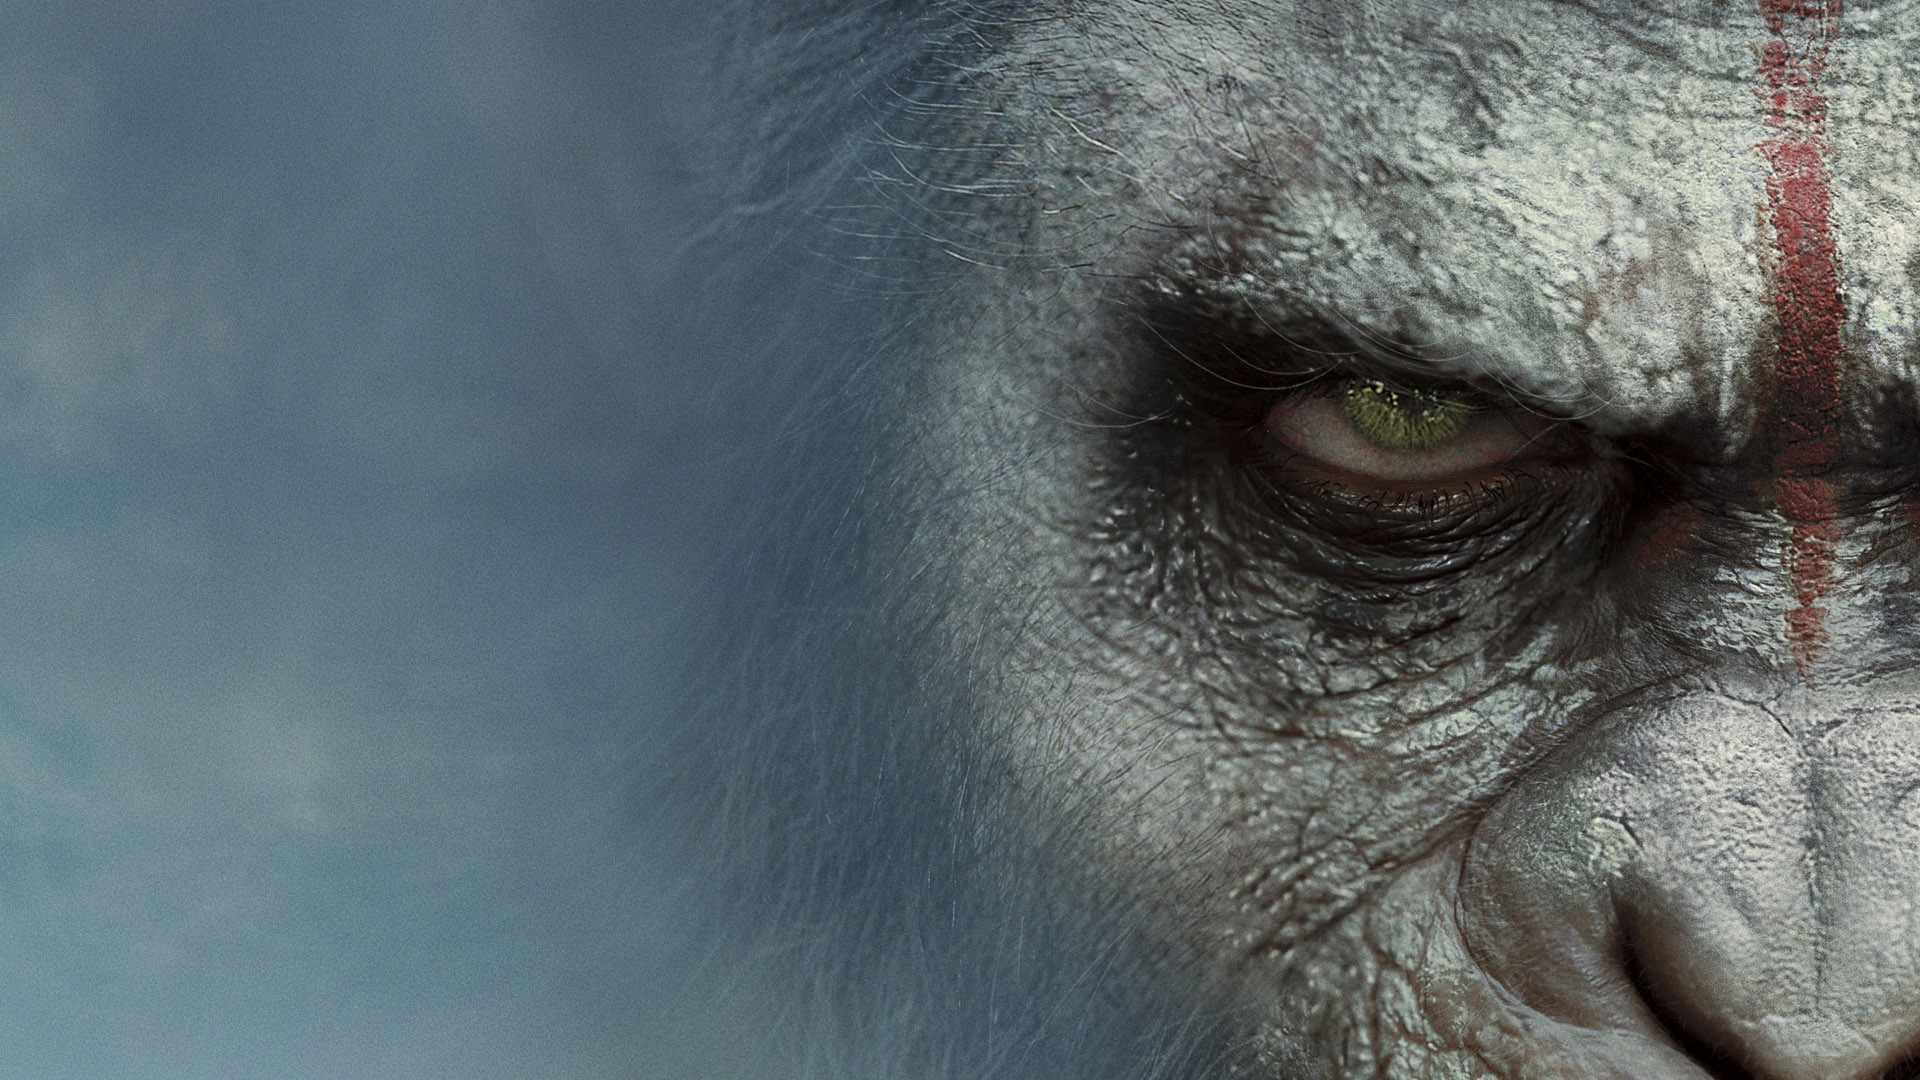 The Colonial Darwinism In War For The Planet Of The Apes